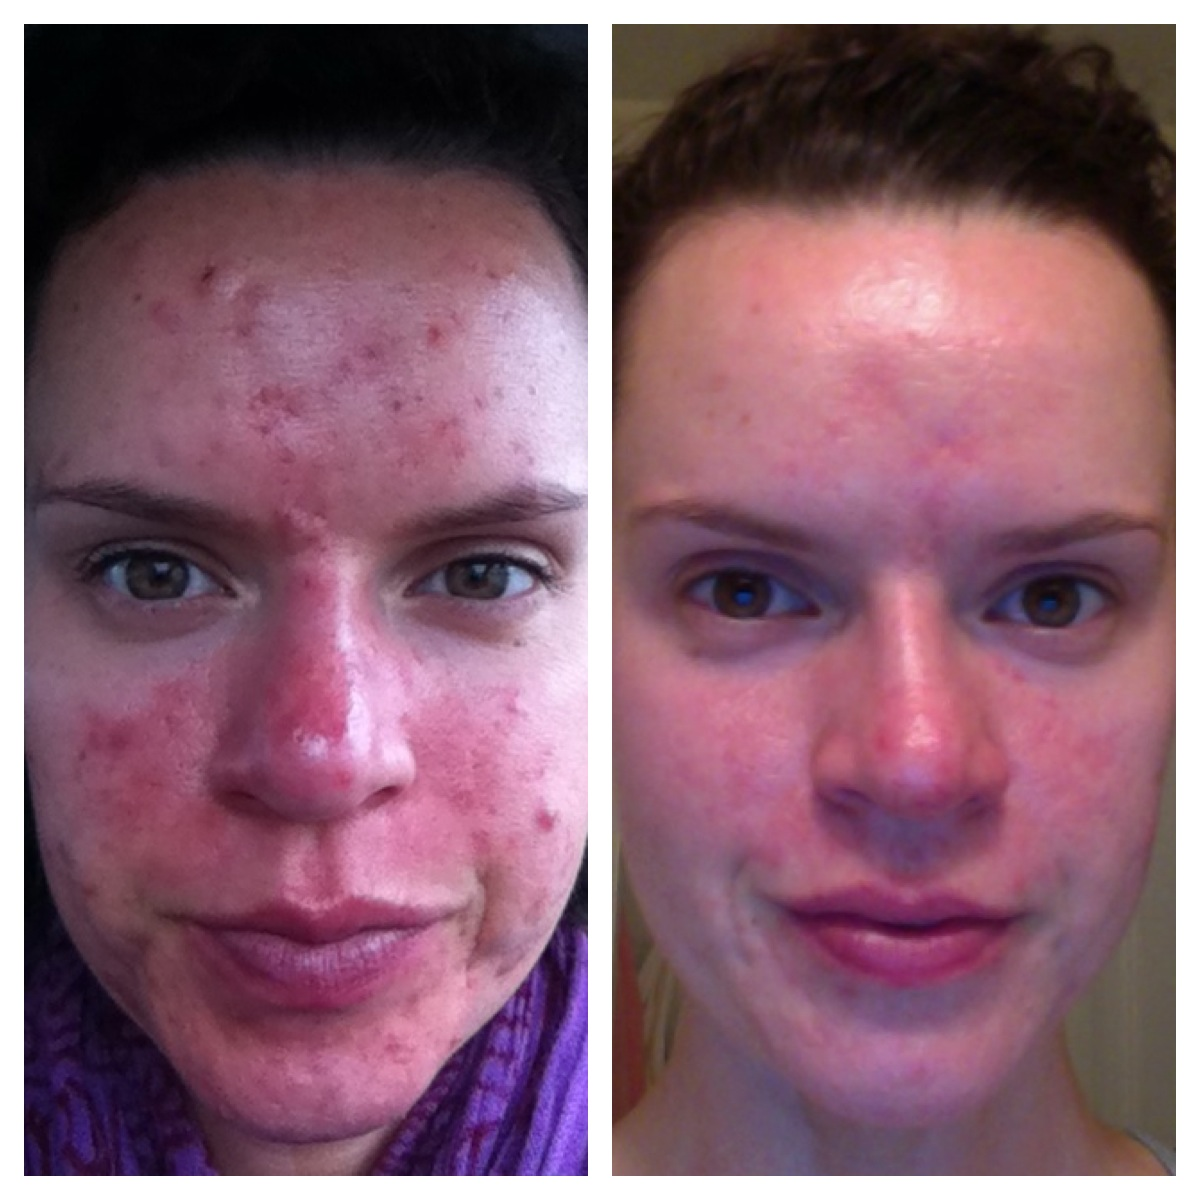 skin-care-before-and-after-6-months.jpg